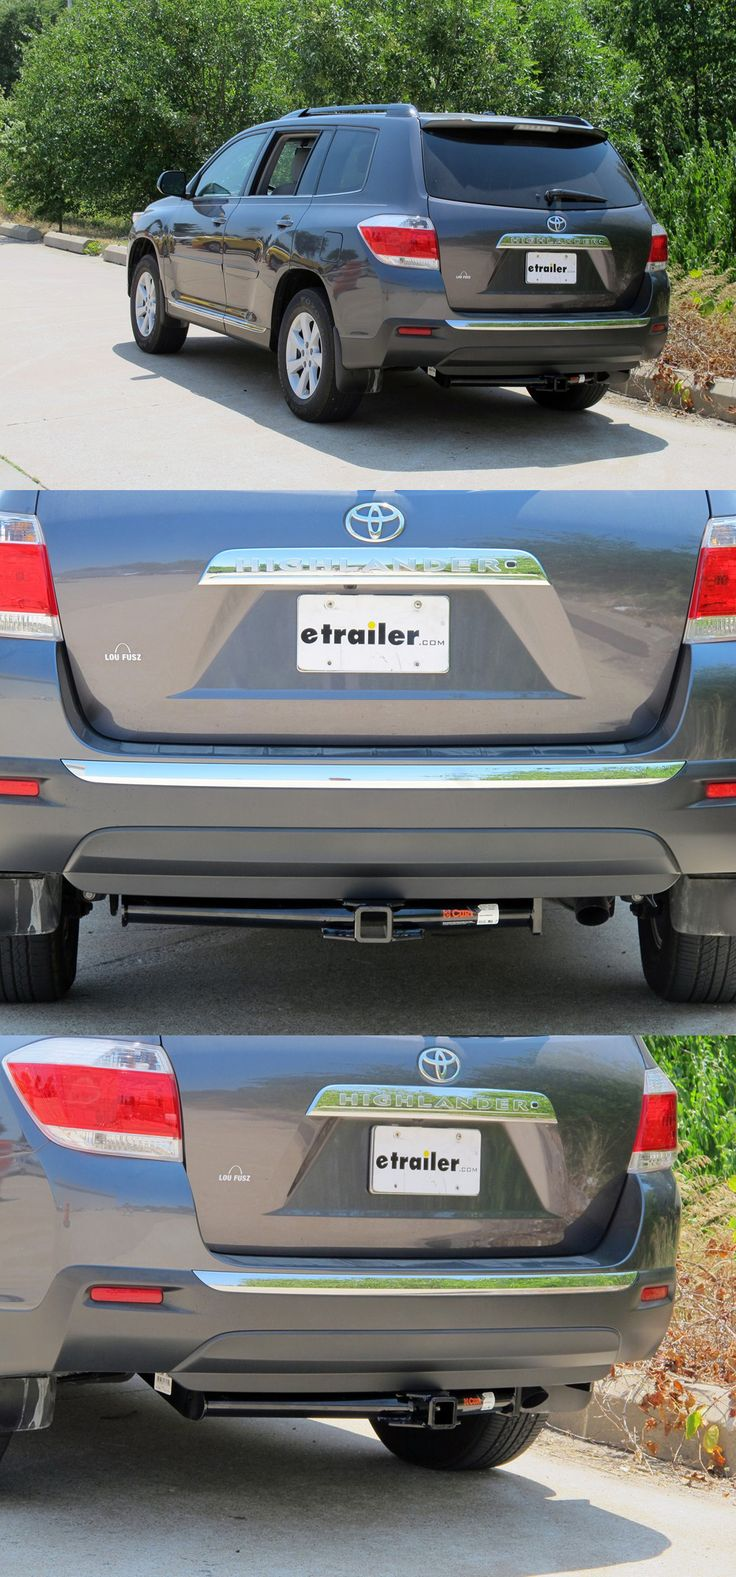 The 1 hitch for the toyota highlander fully welded trailer hitch receiver bolts onto